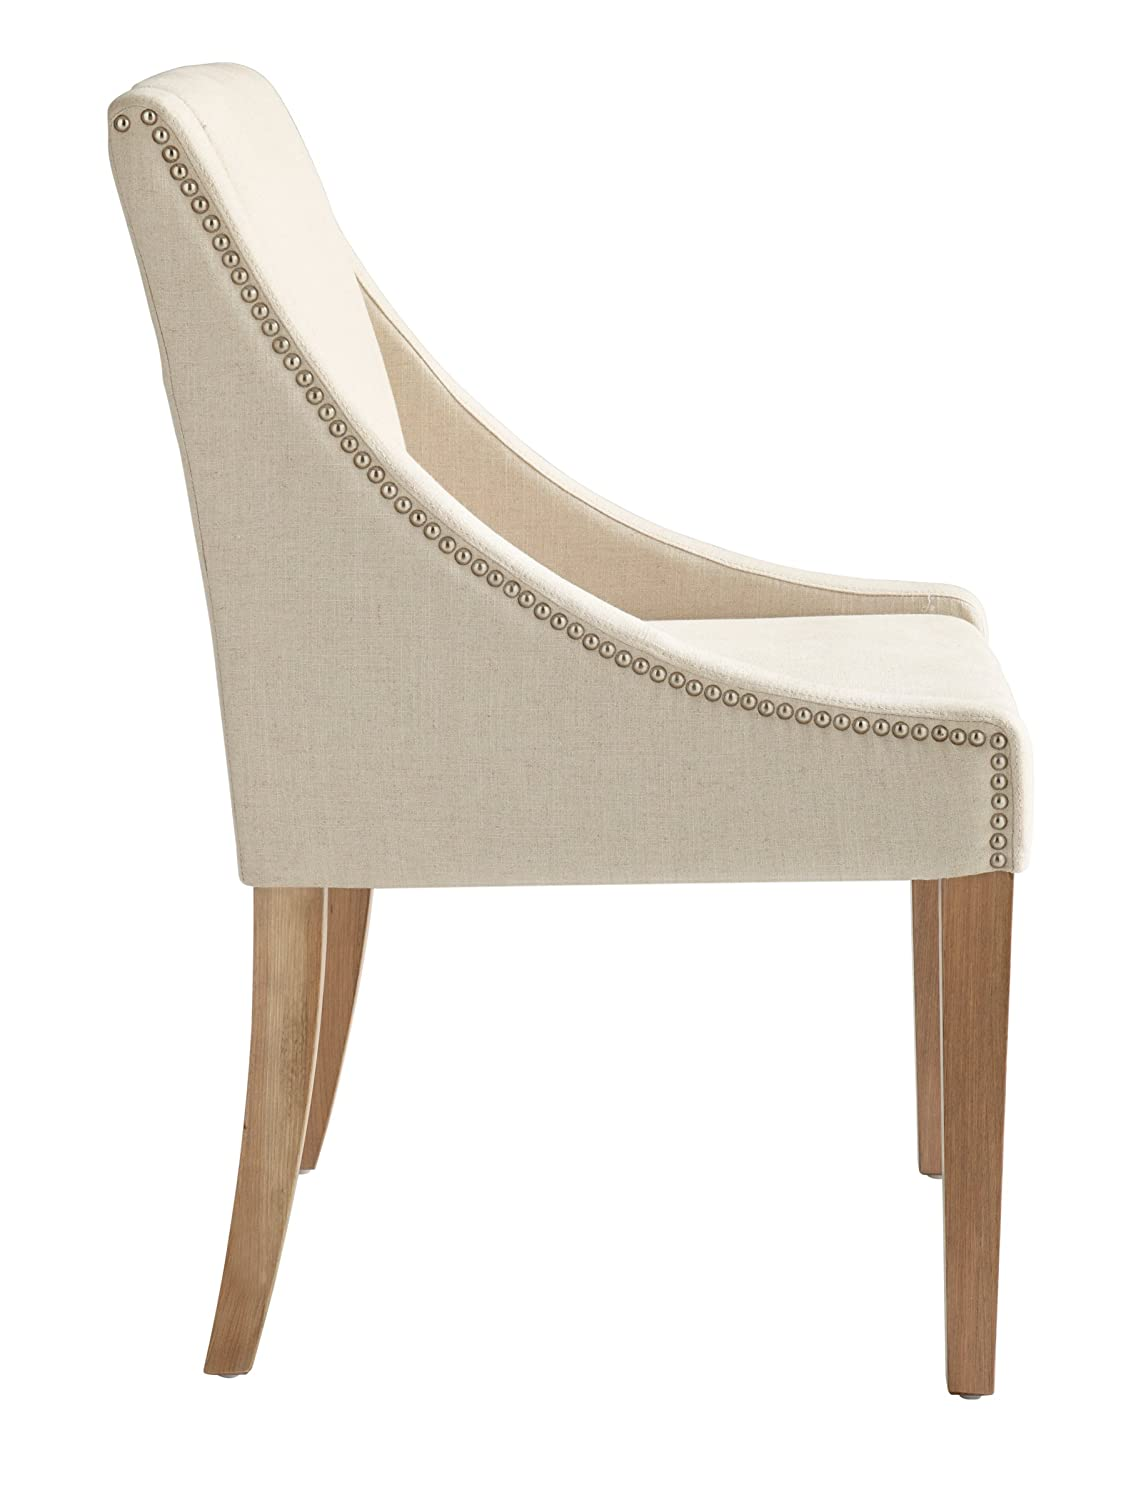 Sunpan Modern 72286-RL Lucille Dining Chair with Linen Fabric